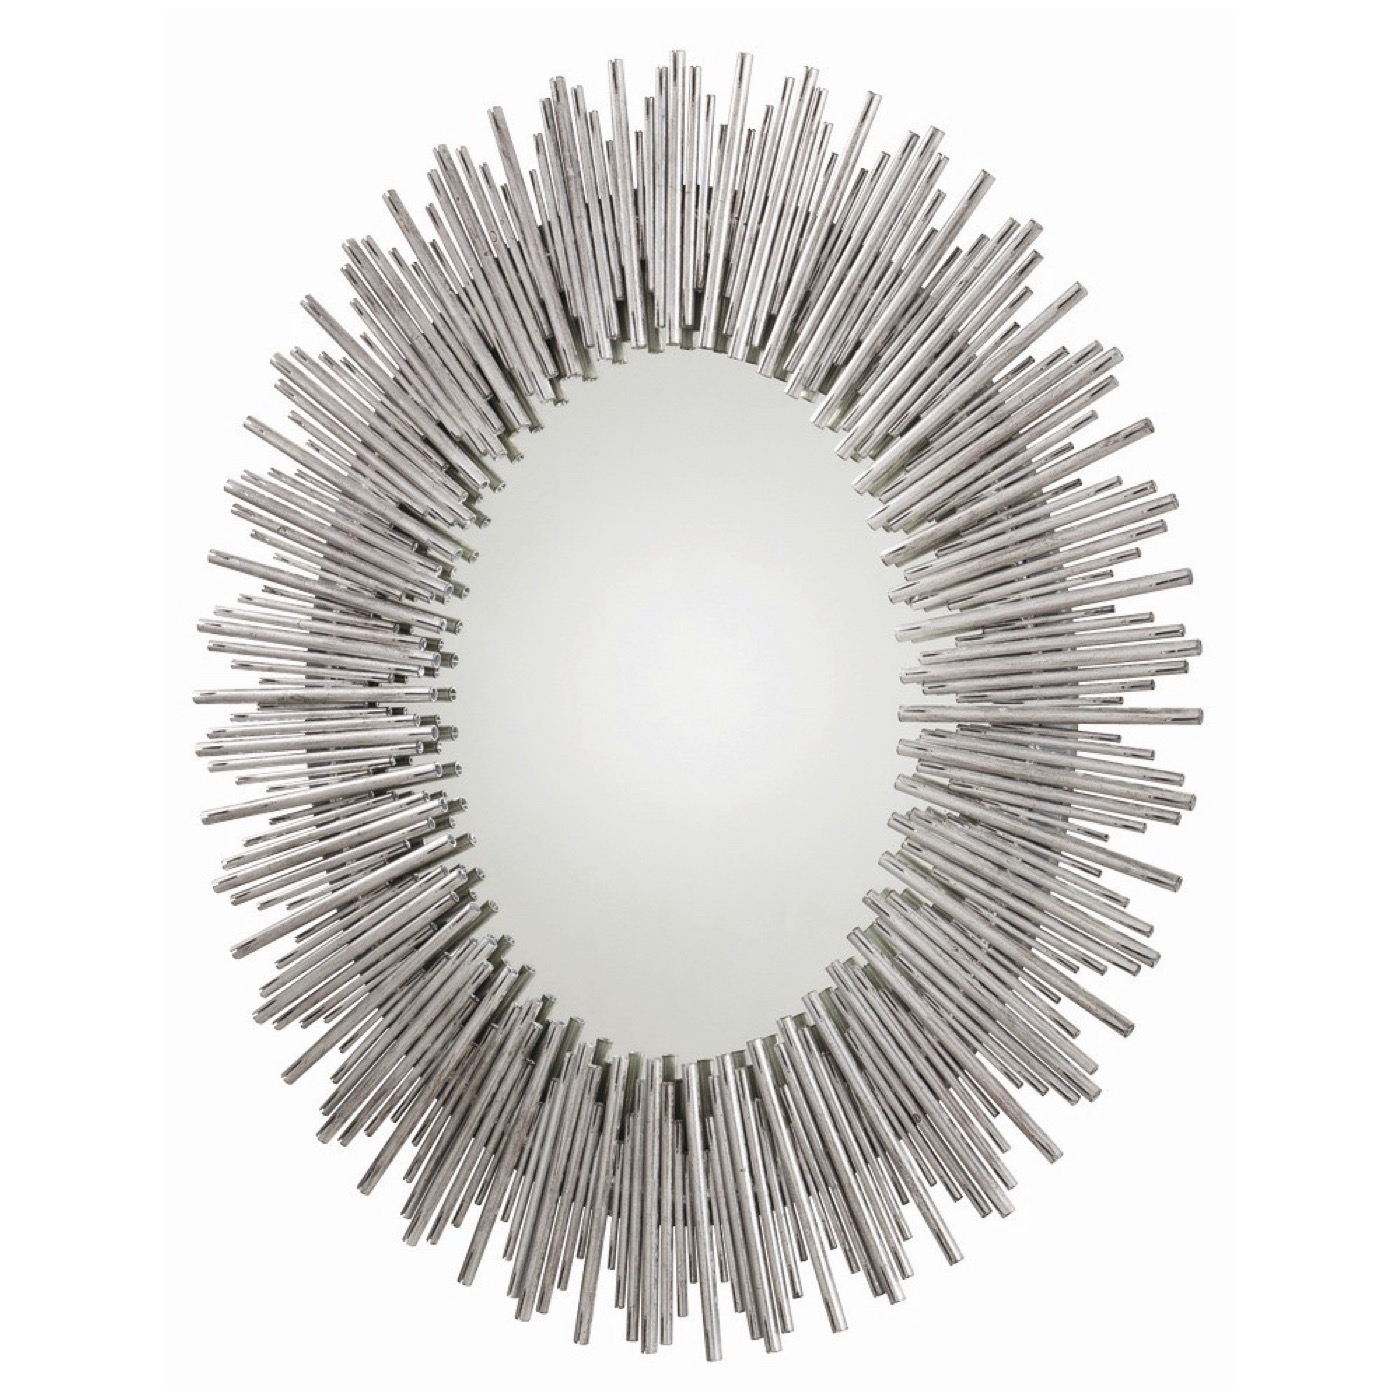 Kentwood Oval Wall Mirror | Silver in Kentwood Round Wall Mirrors (Image 10 of 30)